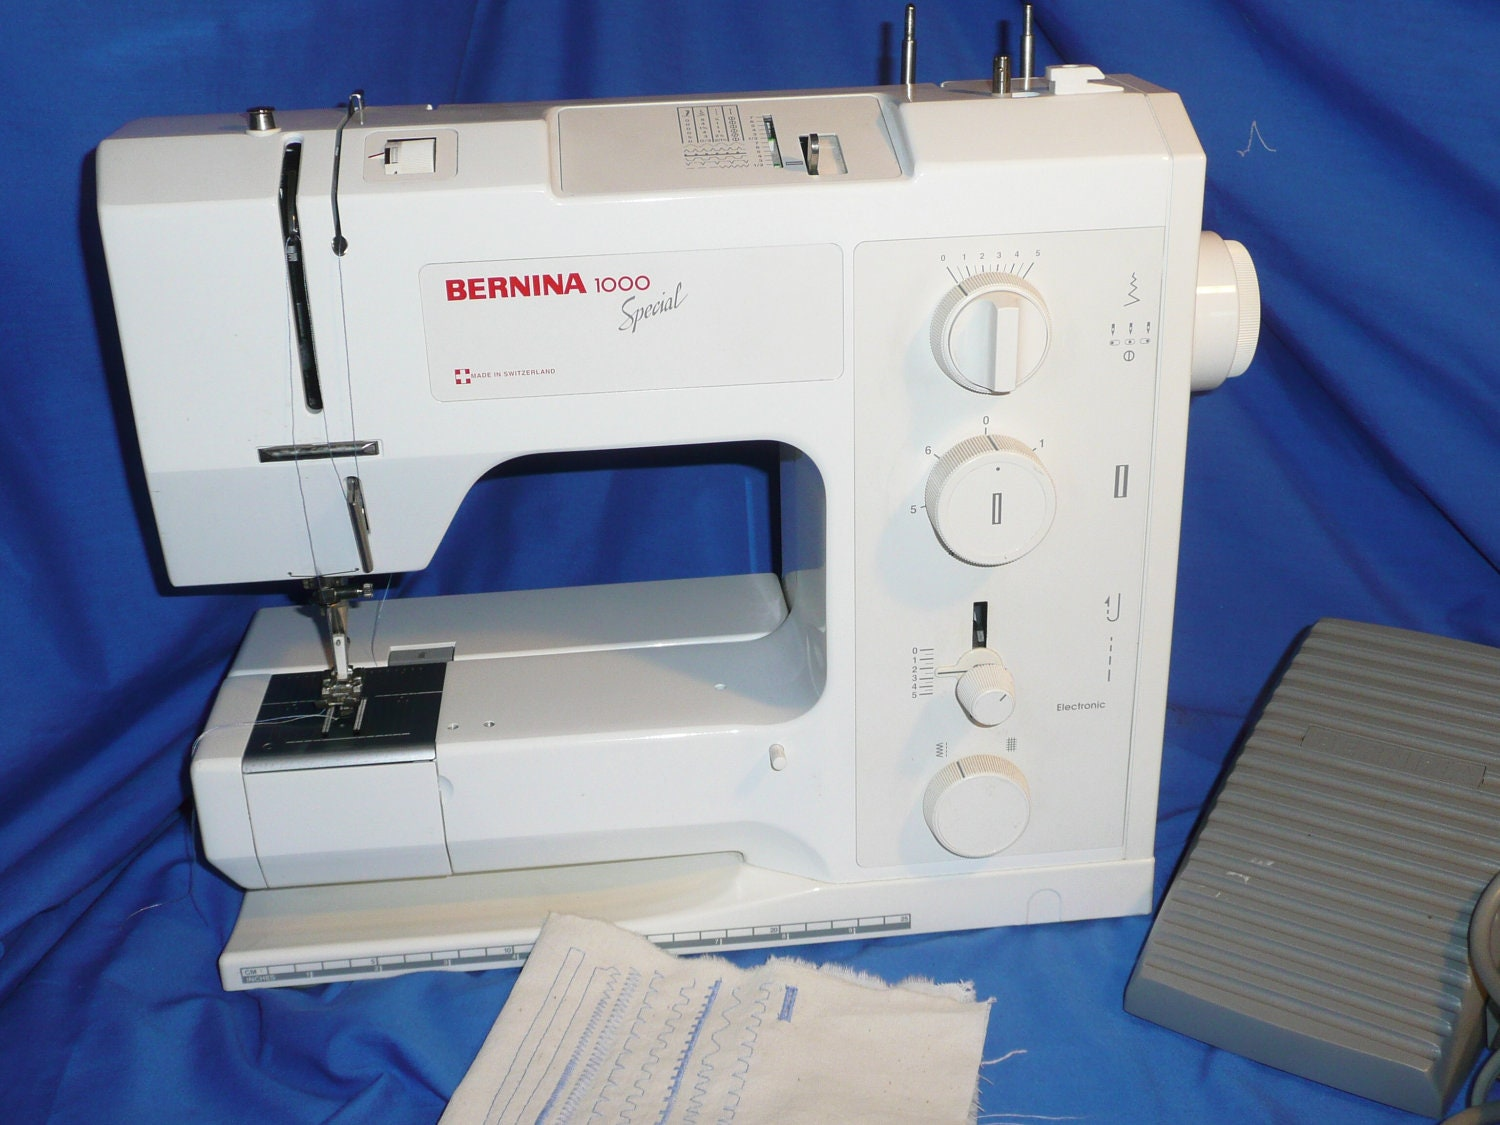 bernina 1000 special sewing machine. Black Bedroom Furniture Sets. Home Design Ideas